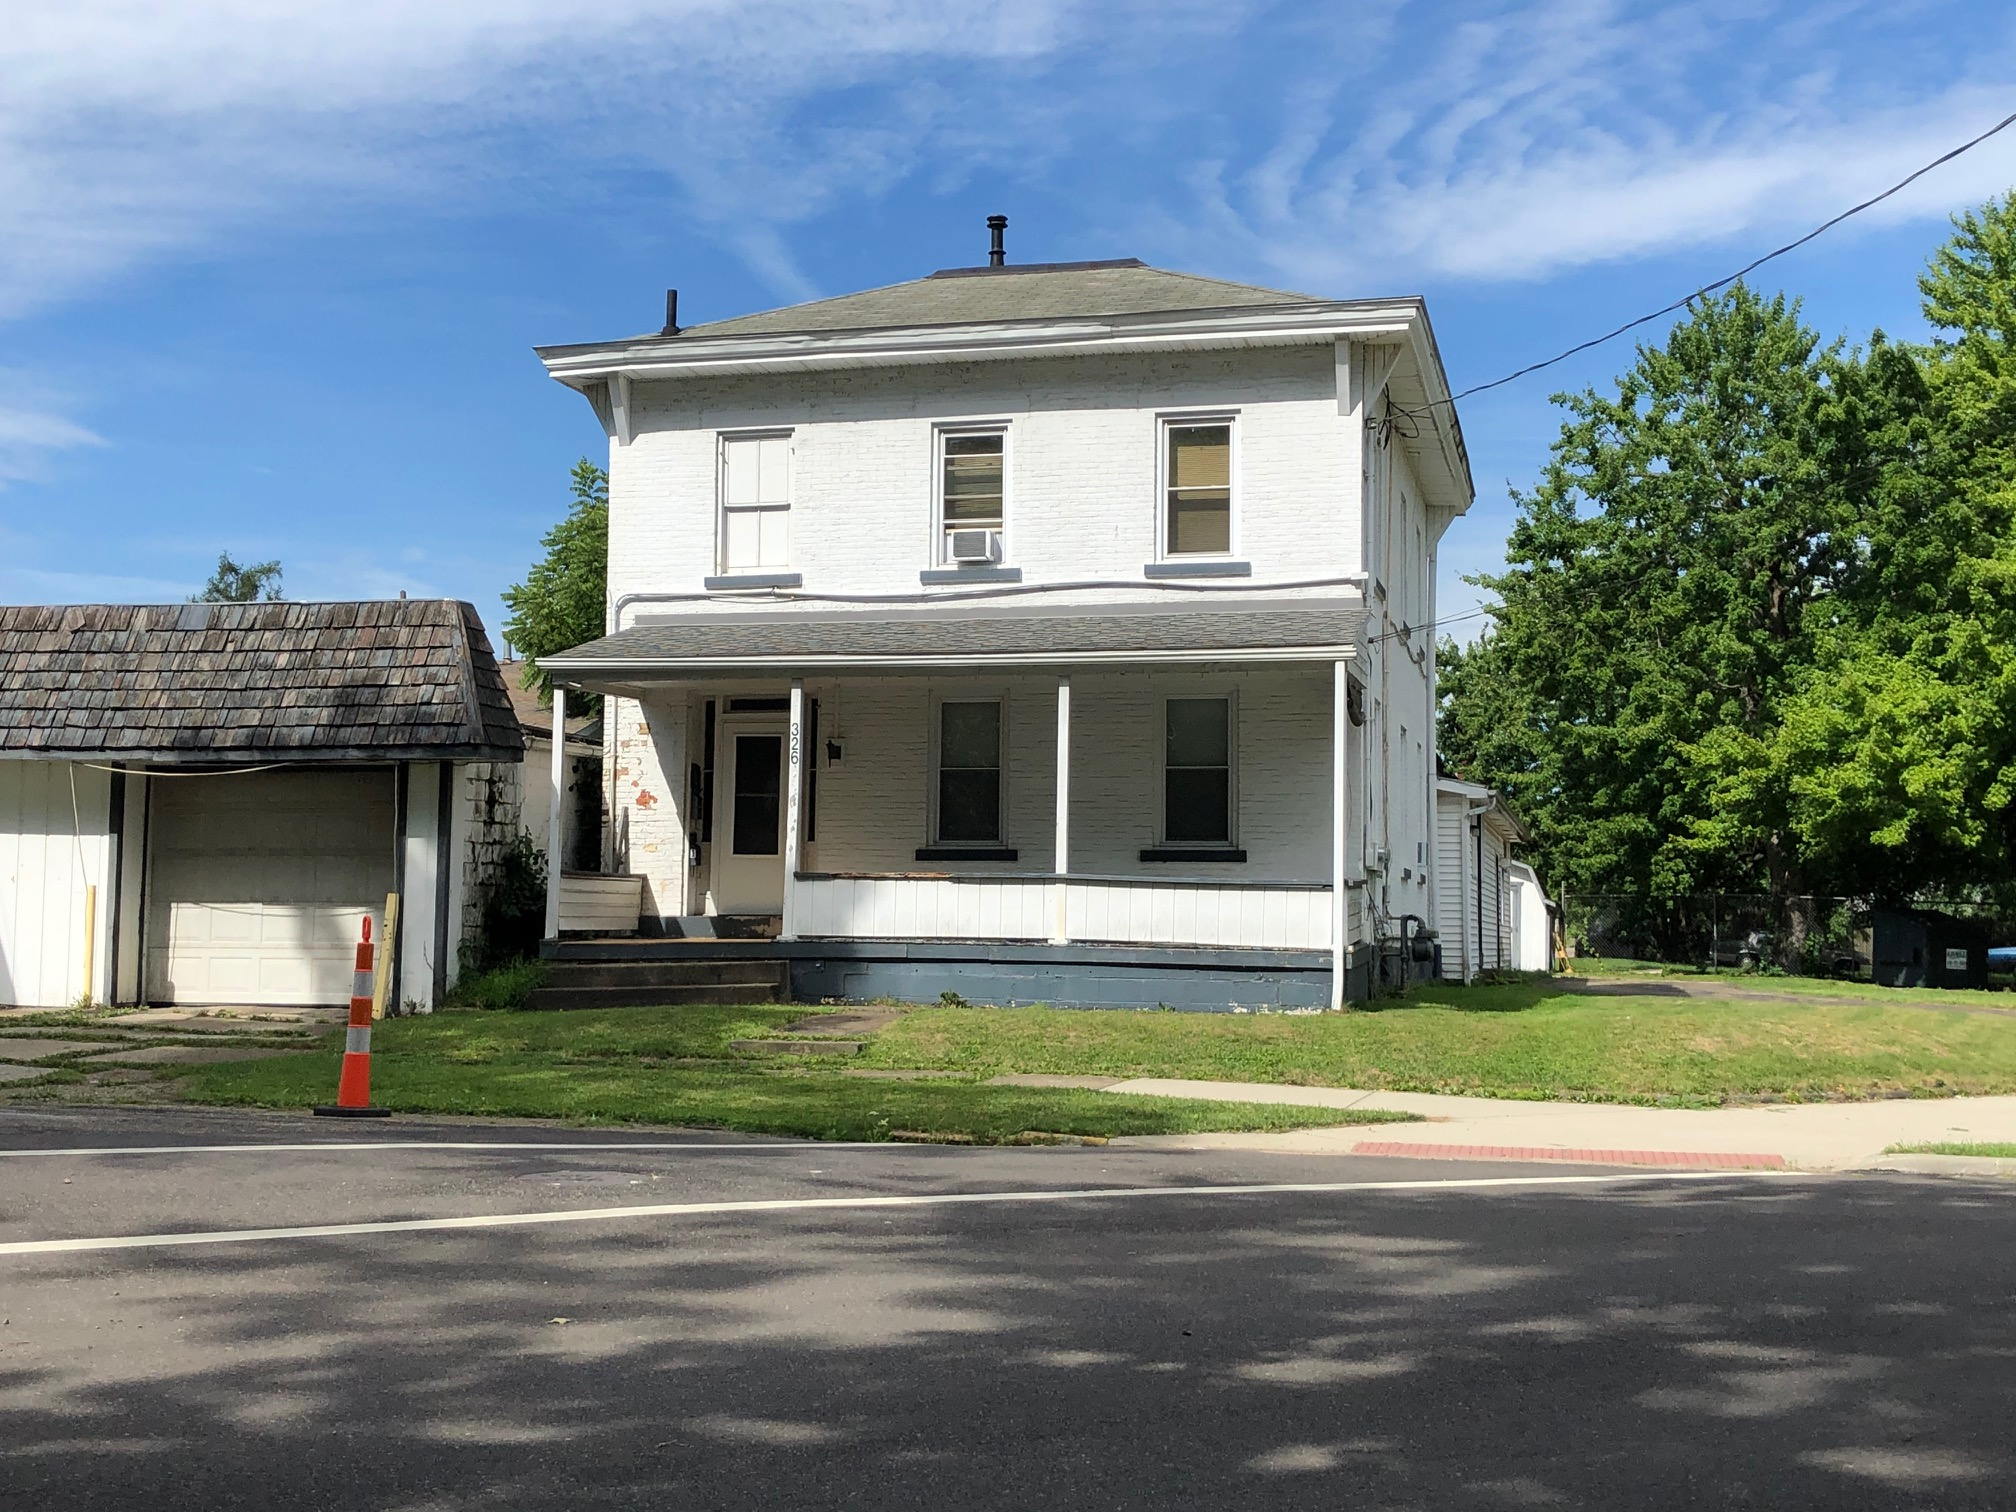 The residence of Mathias Hester, today, on the southwest corner of N. Mechanic Avenue and Hester Avenue